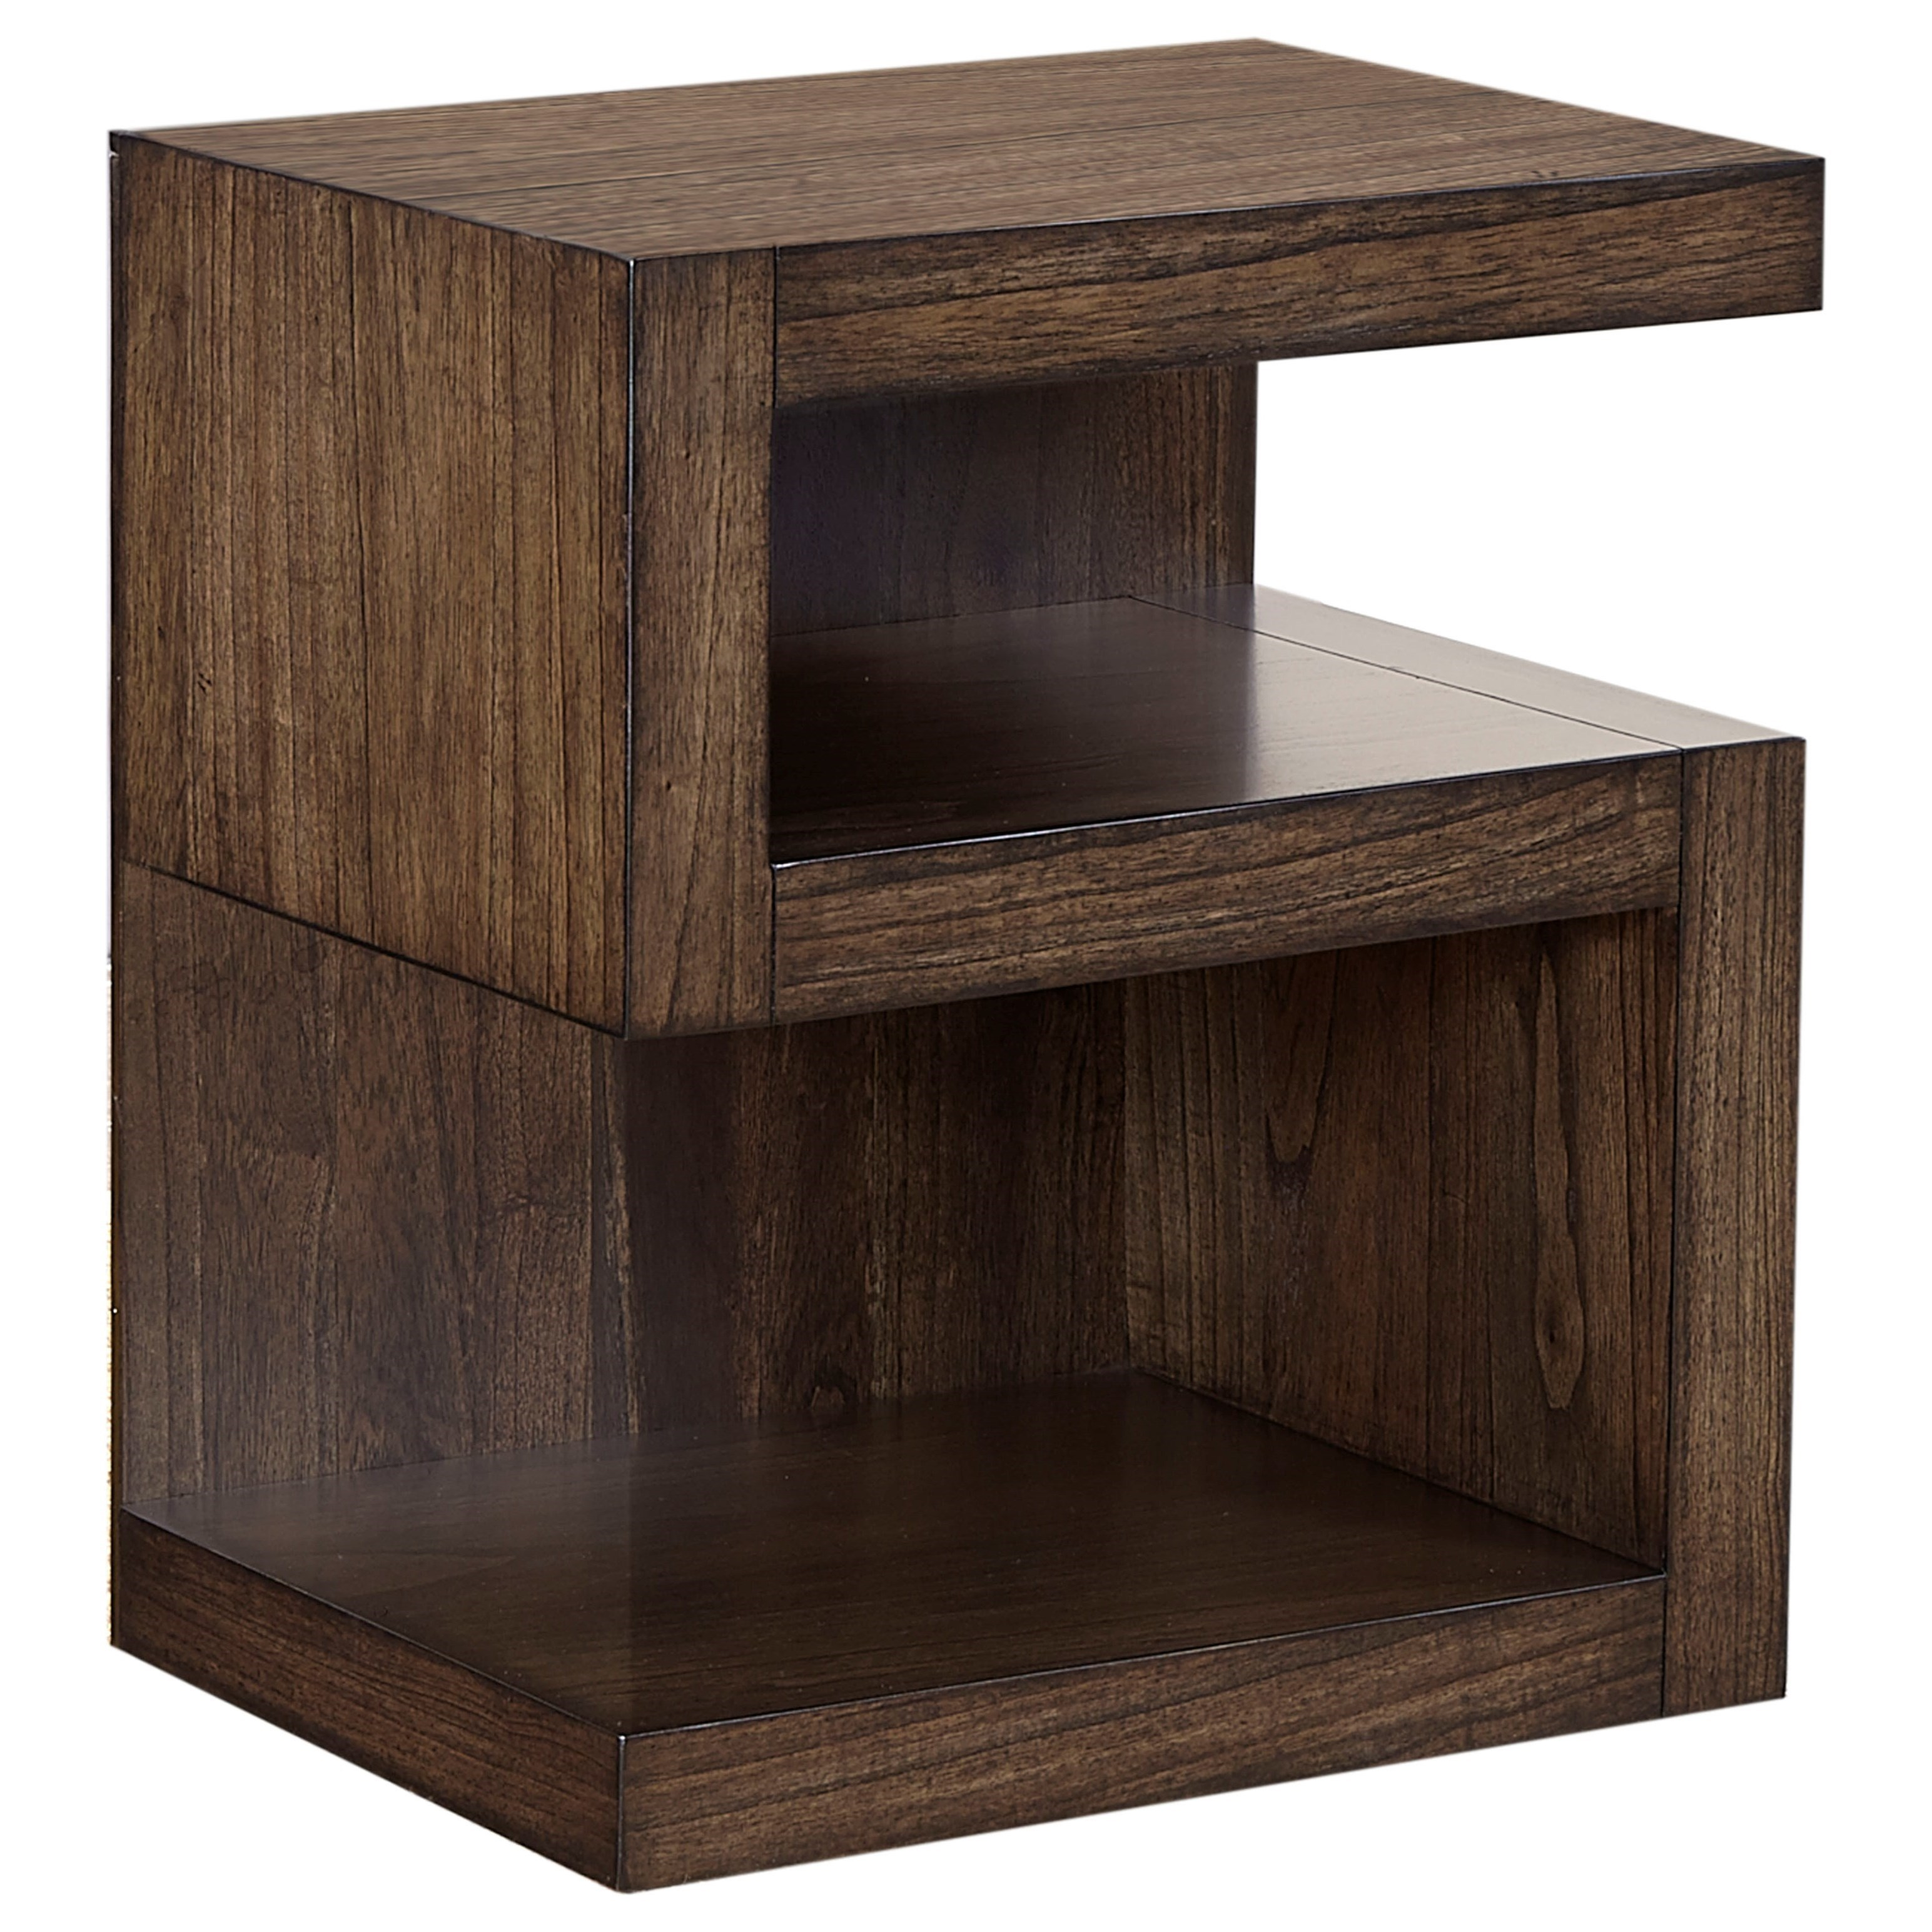 Modern Loft S Nightstand by Aspenhome at Walker's Furniture